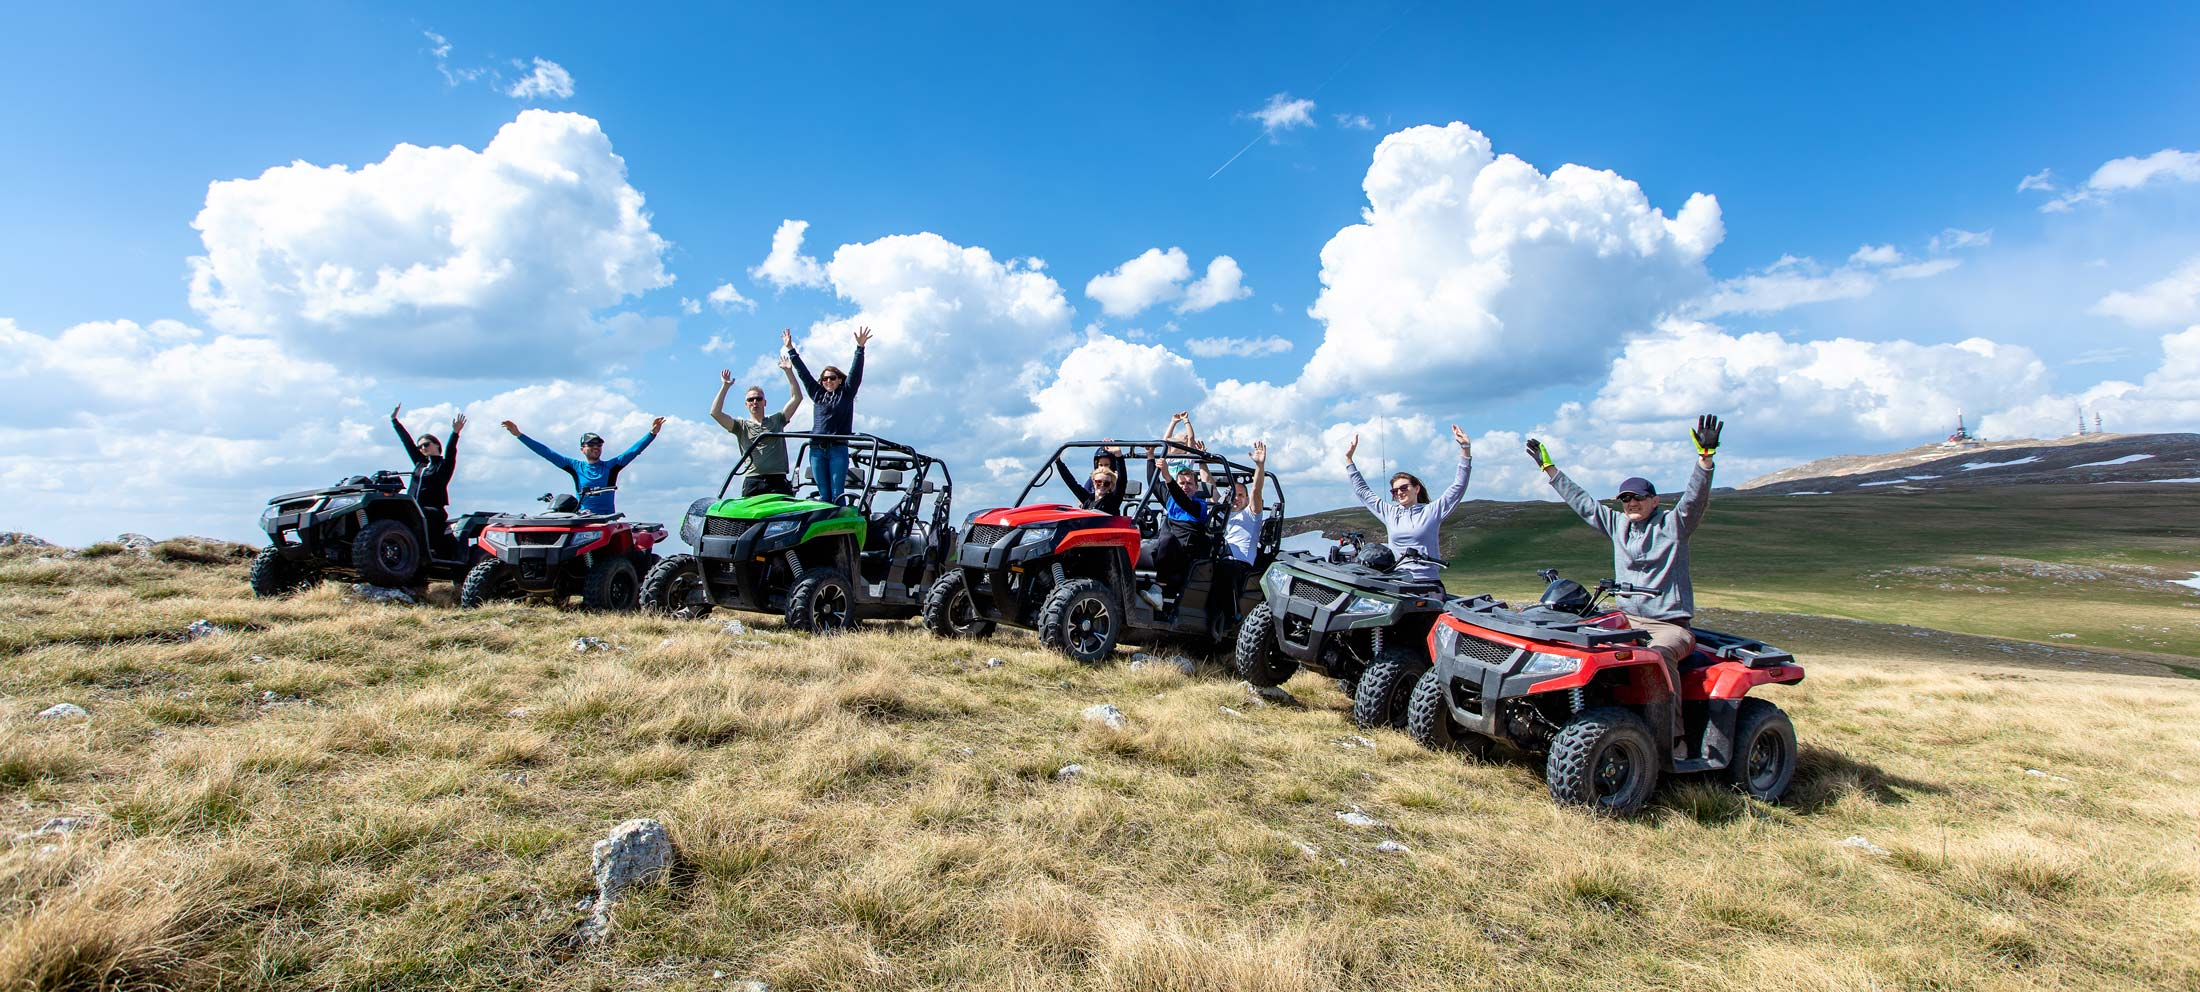 ATV in Montana's Missouri River Country